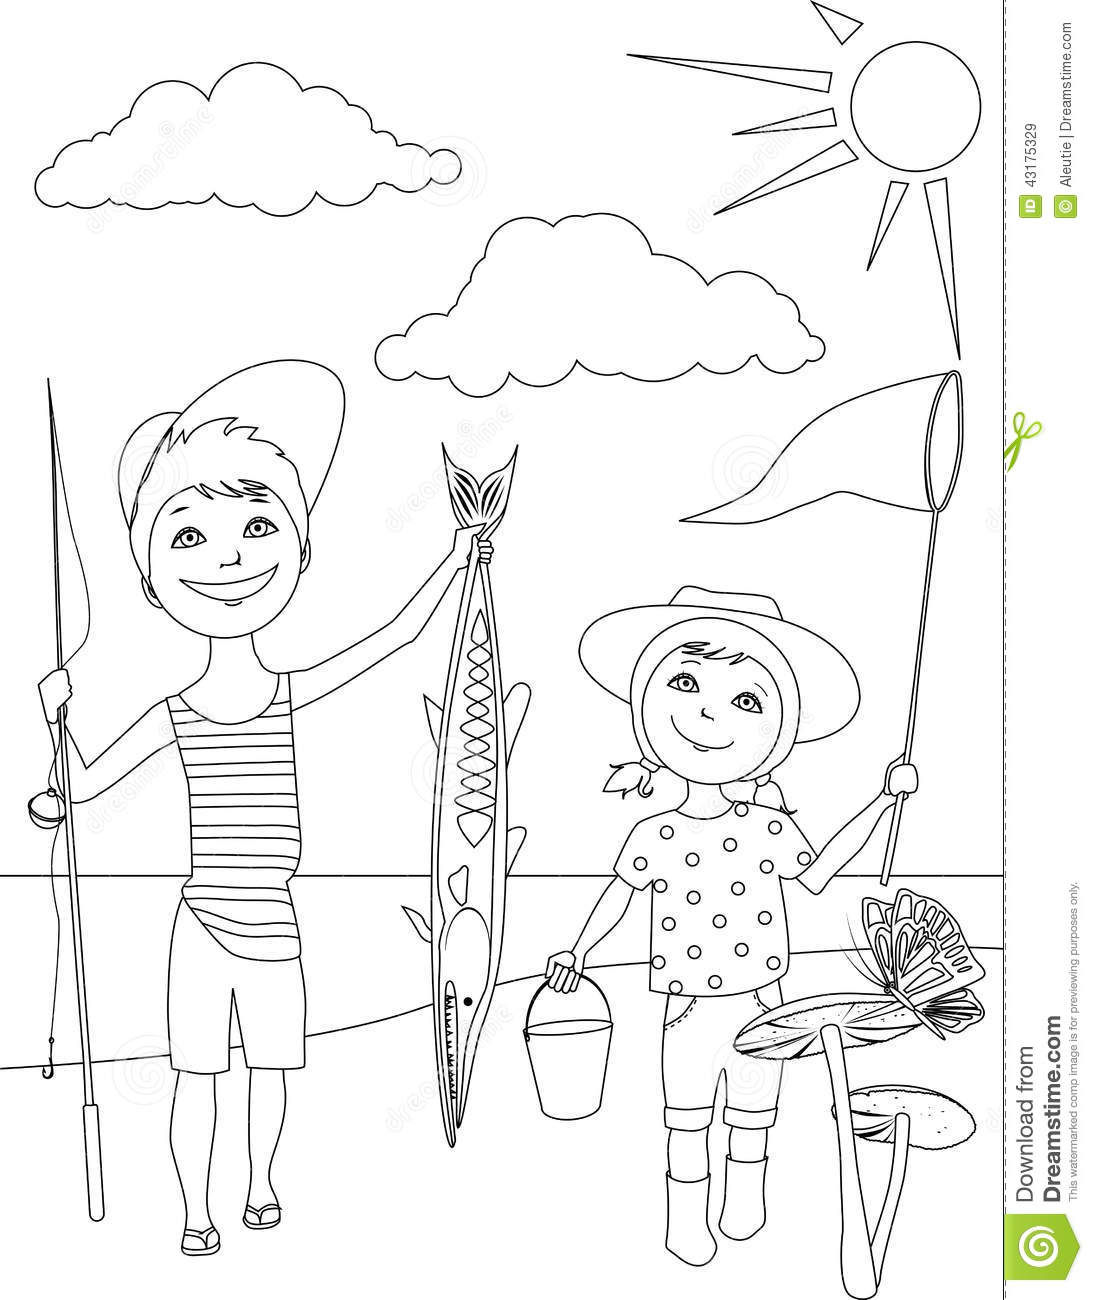 Coloring summer activities - Royalty Free Vector Download Summer Activities For Kids Coloring